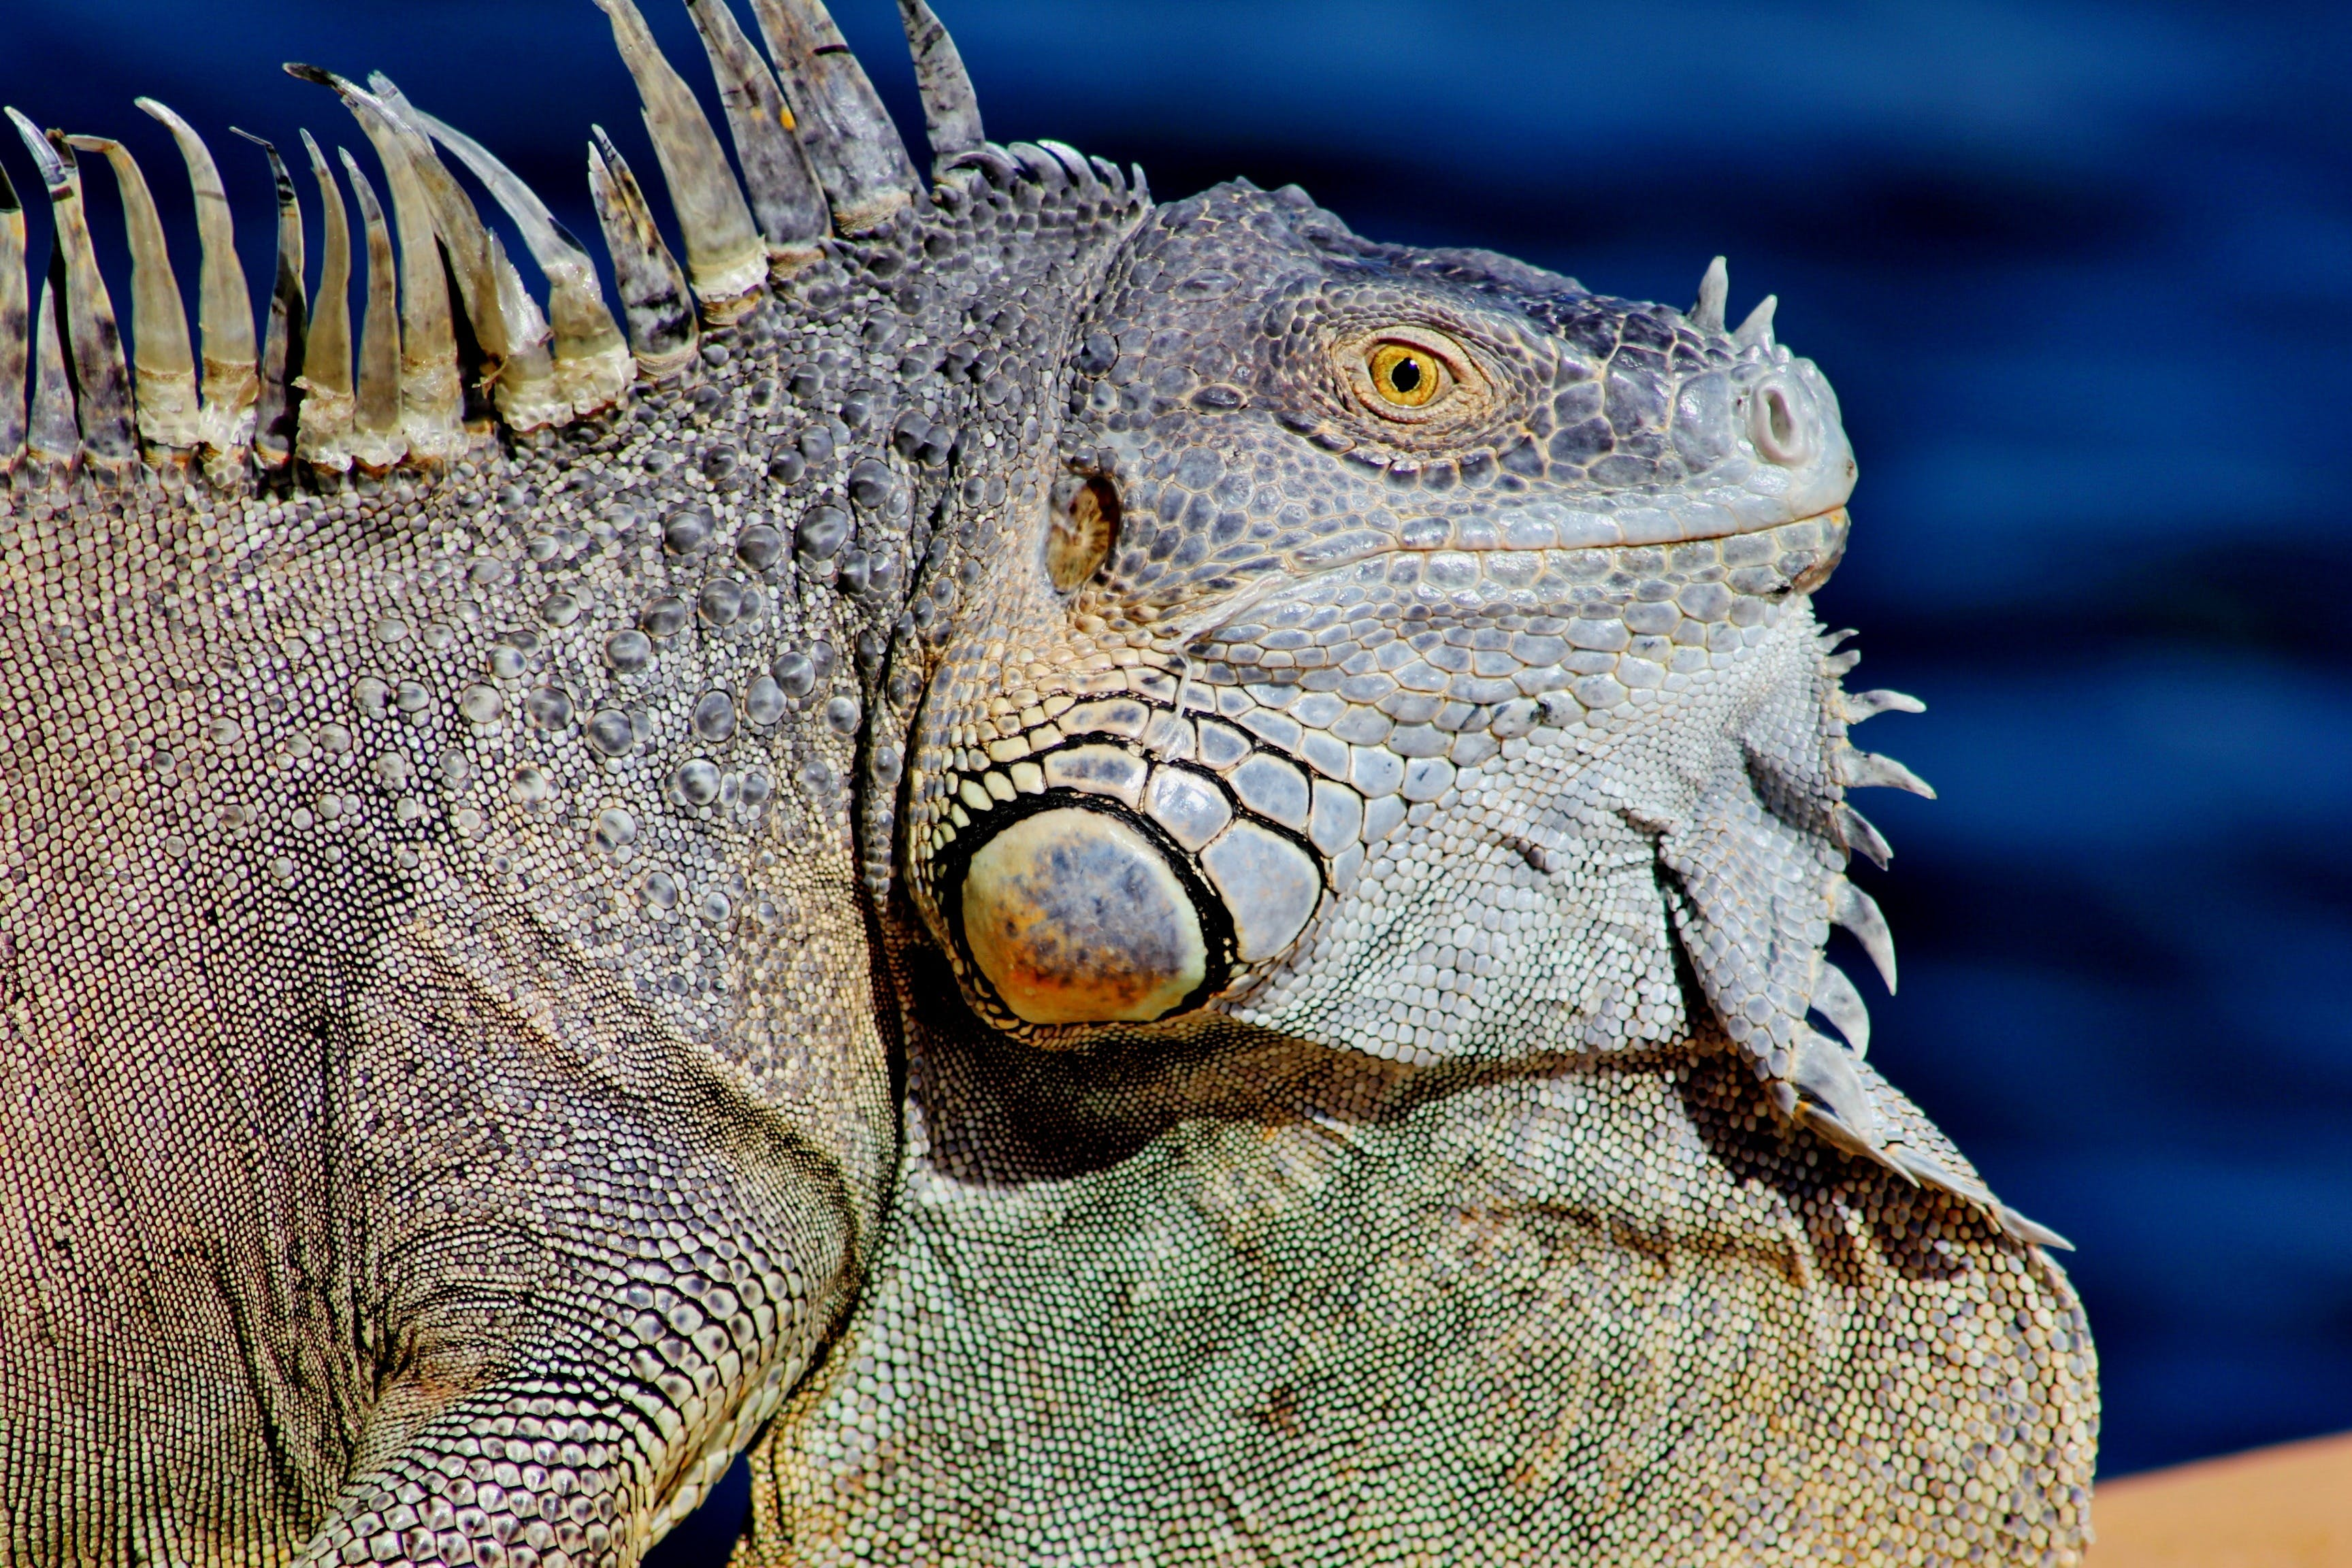 Gray and Green Iguana Close-up Photography